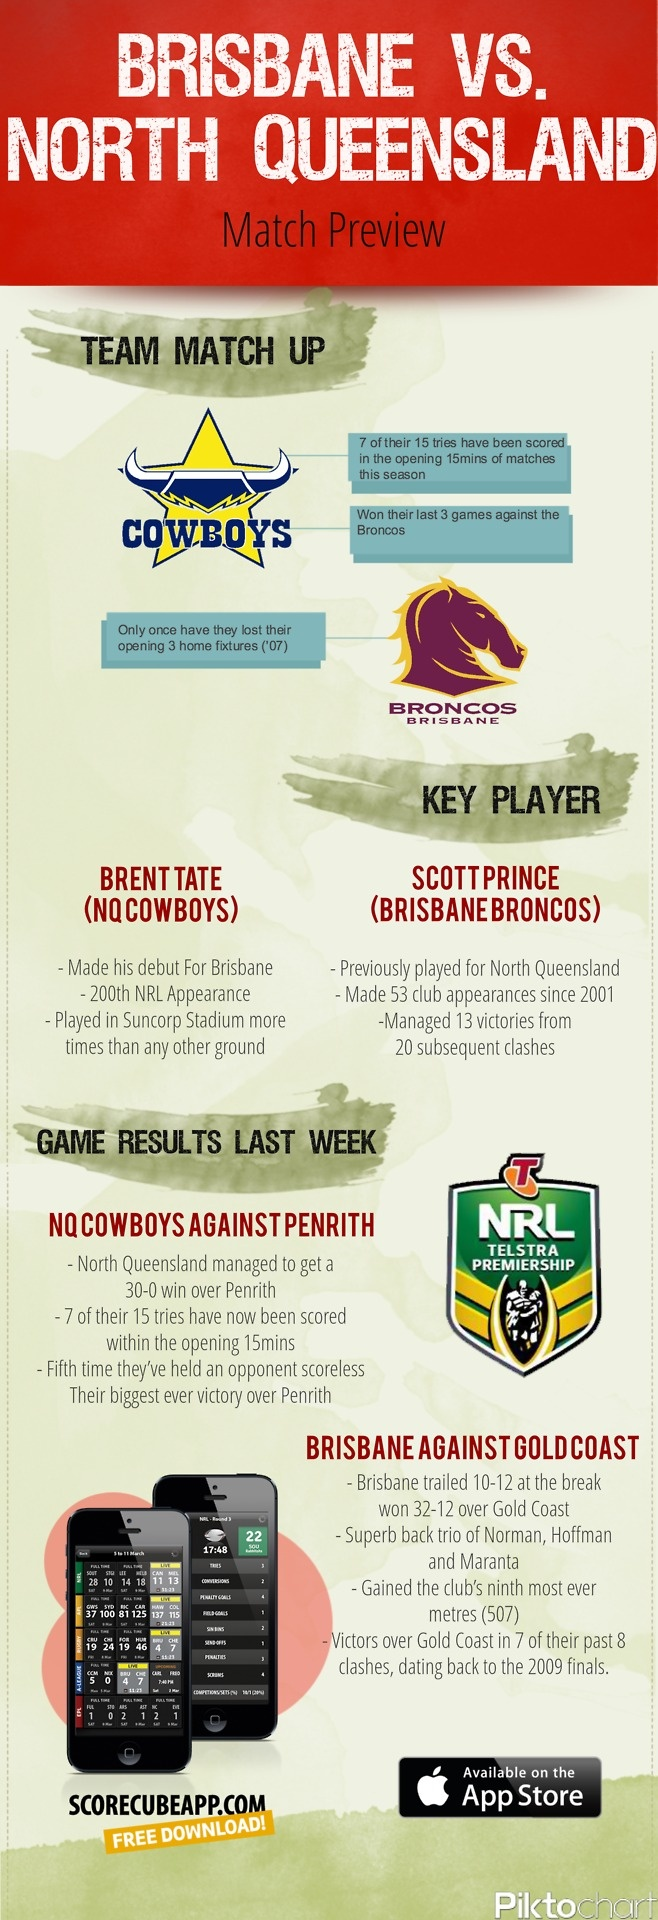 Here's the match preview of Brisbane Broncos and North Queensland Toyota Cowboys for their NRL - National Rugby League game tonight       For stats, scores and local schedules of the NRL and your favorite team download the ScoreCube app. http://scorecubeapp.com/  Download the app here:  itunes download link  Follow us on Twitter: @scorecubeapp  We are also on Facebook:  https://www.facebook.com/scorecube